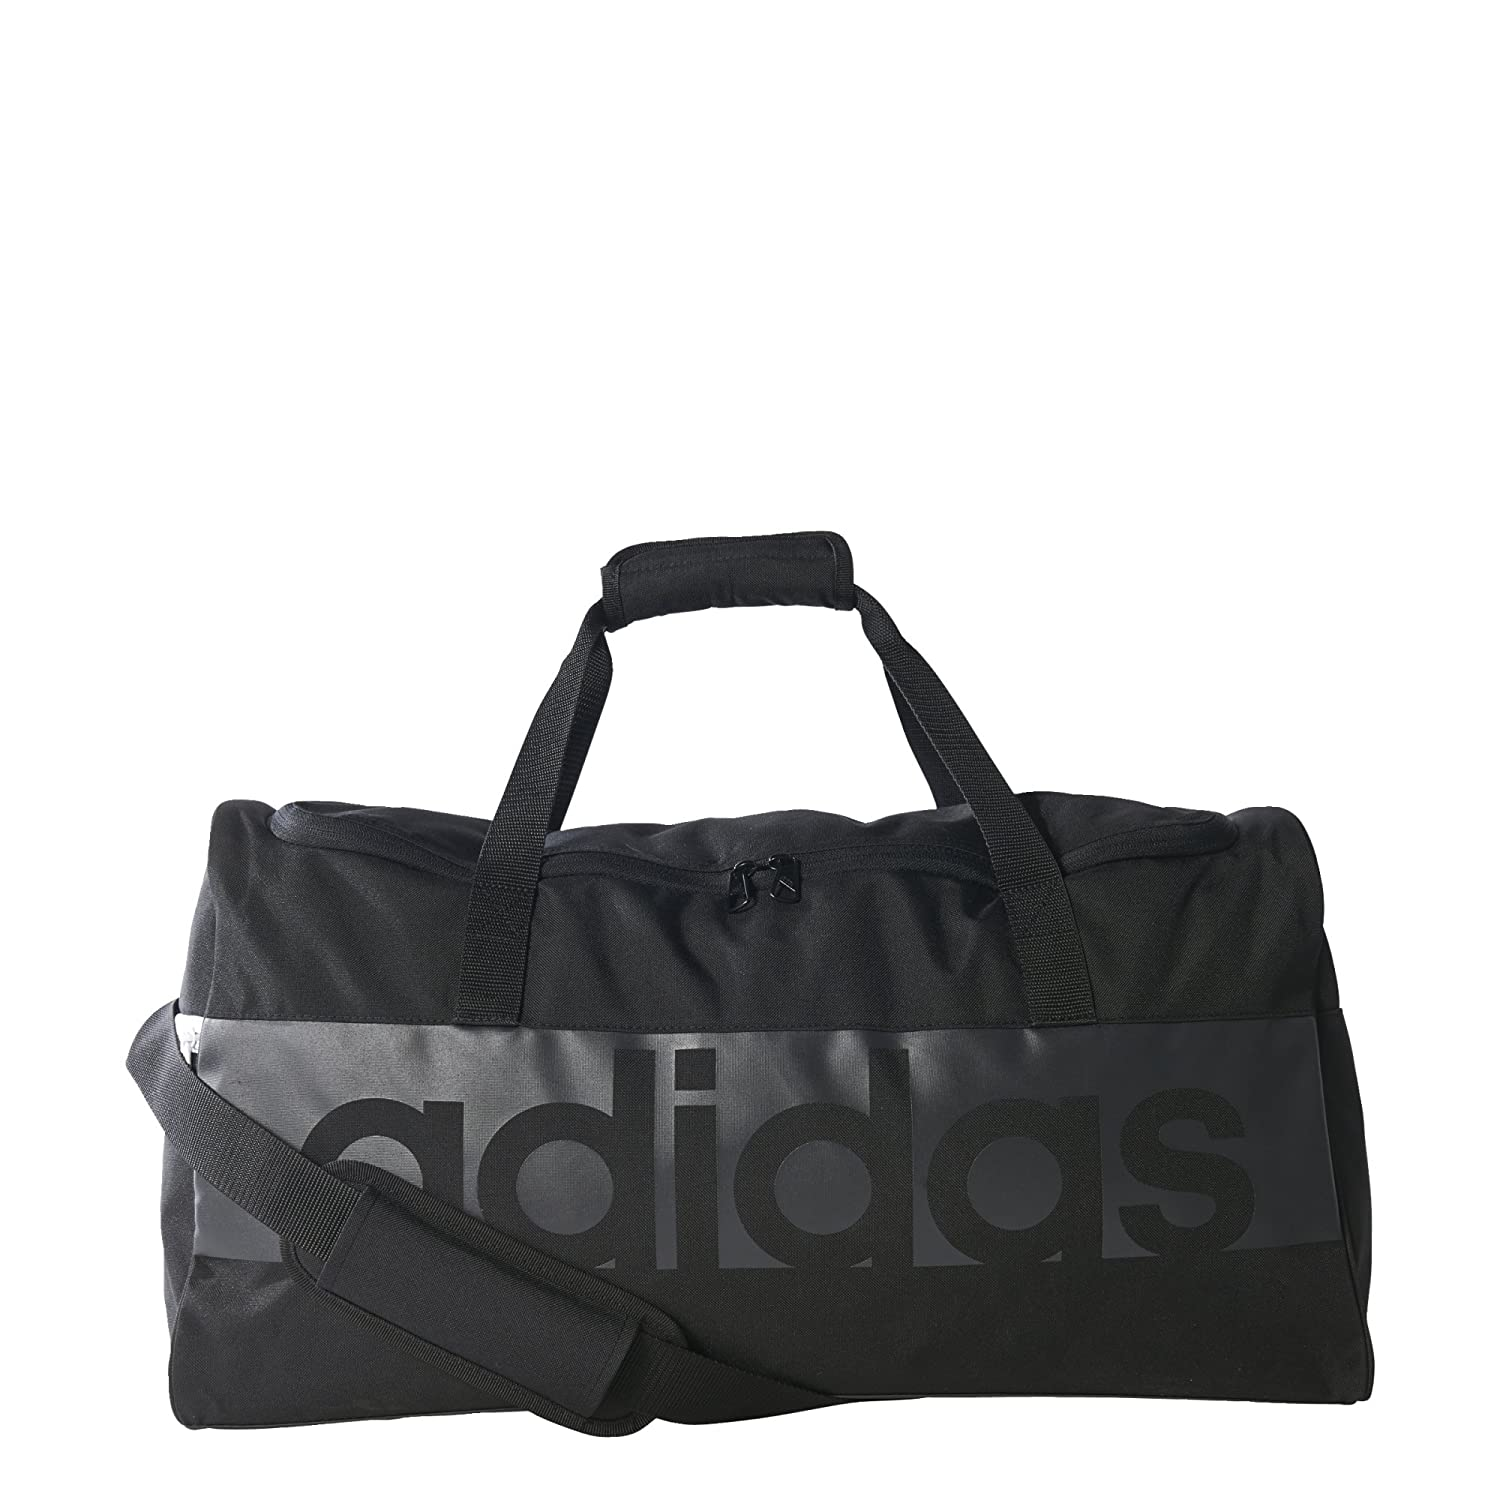 adidas Tiro Linear Teambag Football Bag One size S96148